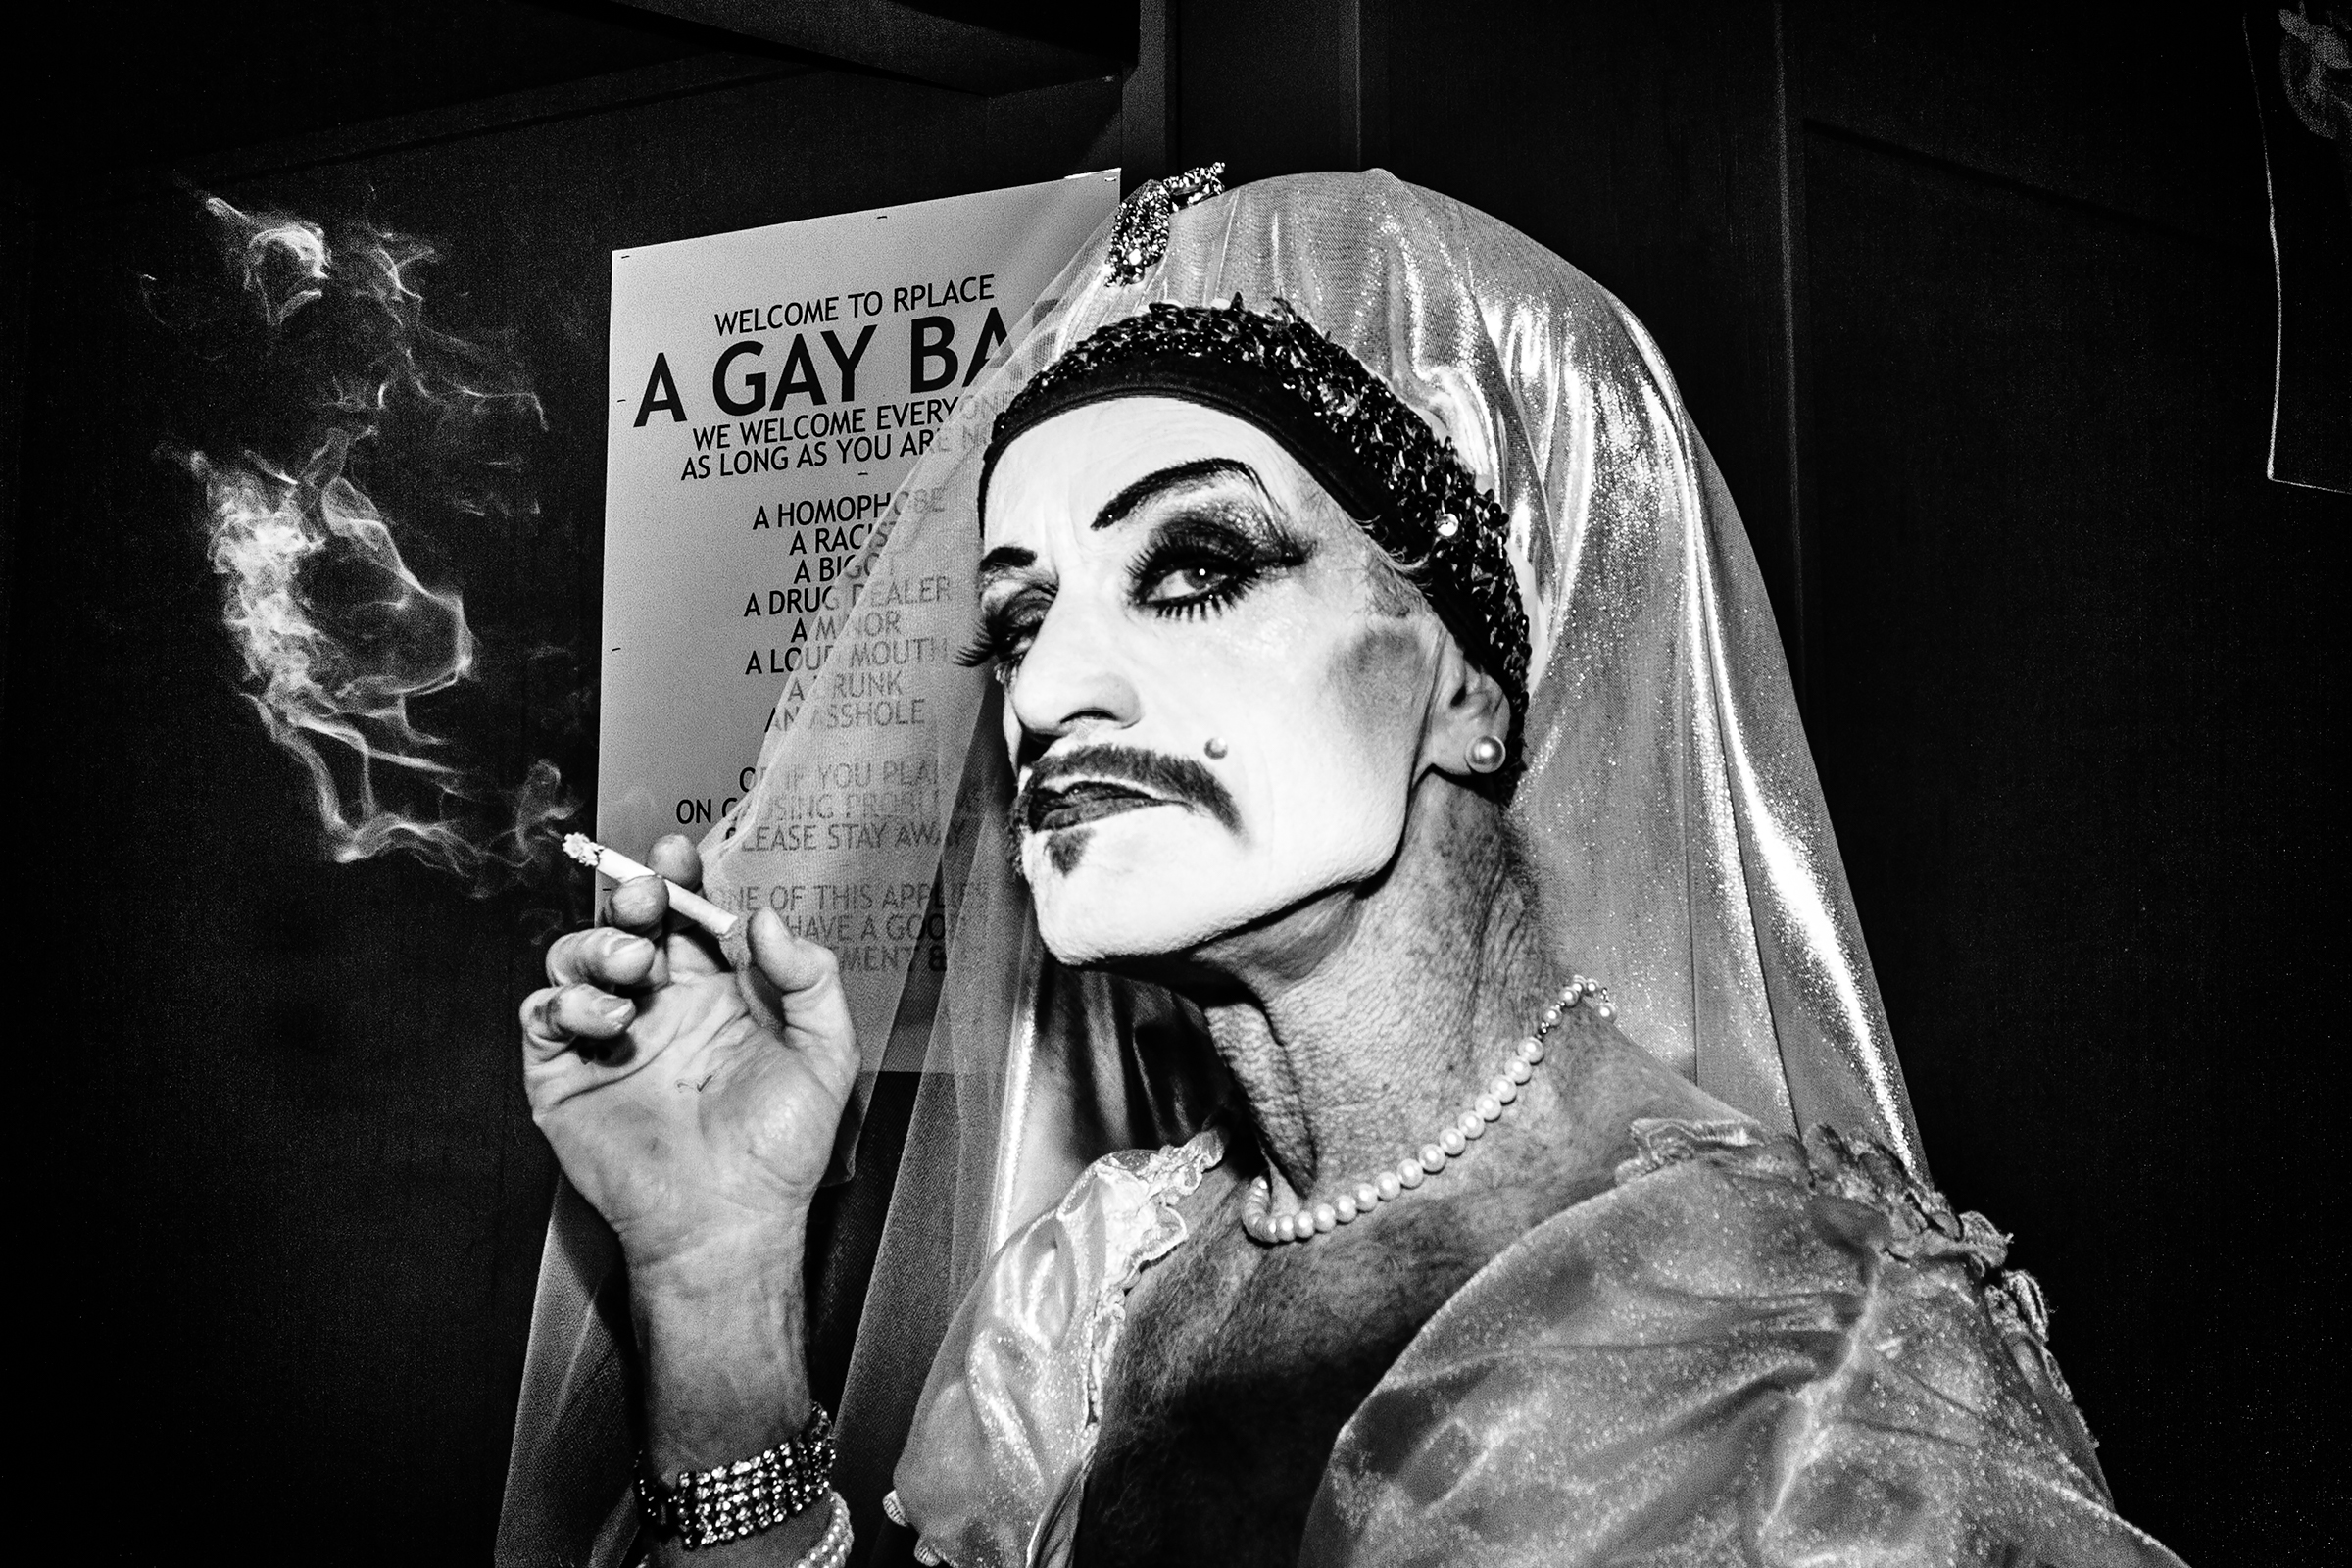 A member of the Sisters of Perpetual Indulgence, The Abbey of St. Joan, drags on a cigarette outside R Place on October 28th, 2011, in Seattle.